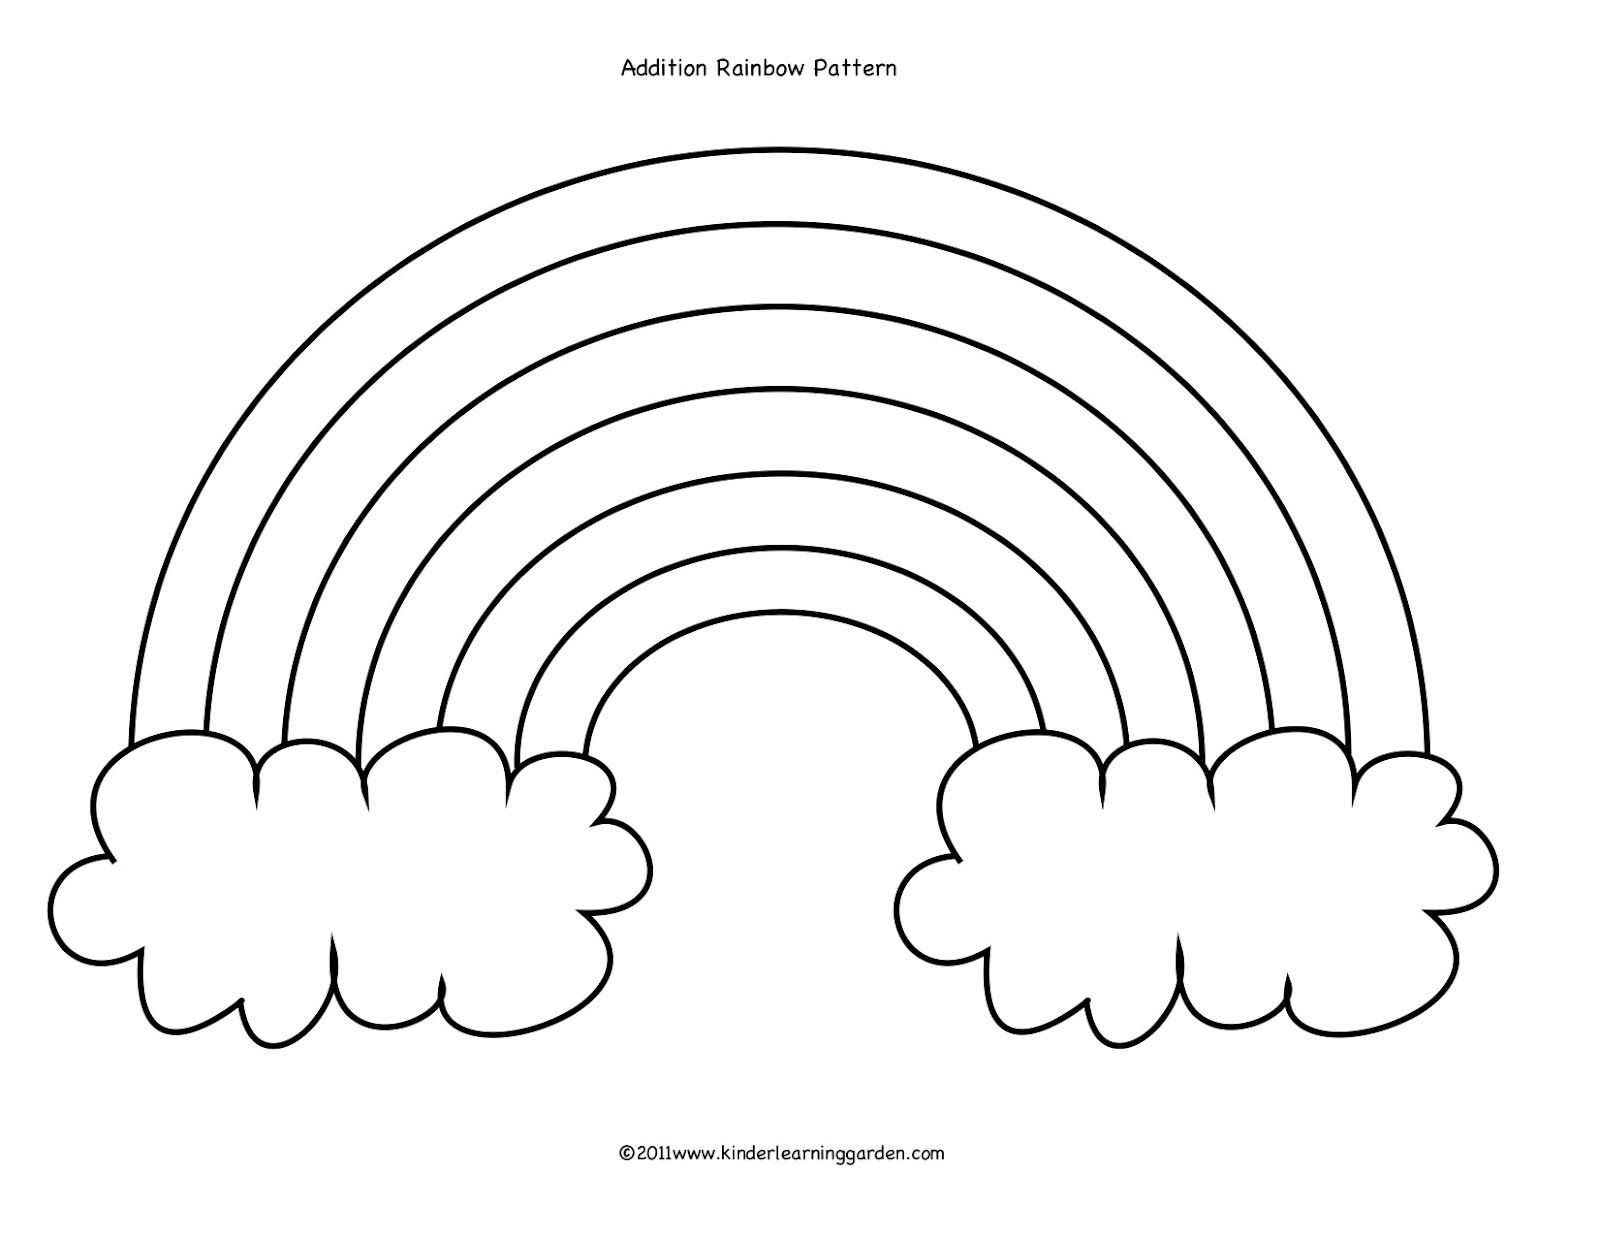 Kinder Learning Garden Blog Rainbow Cloud Addition Rainbow Pages Rainbow Drawing Preschool Coloring Pages [ 1236 x 1600 Pixel ]